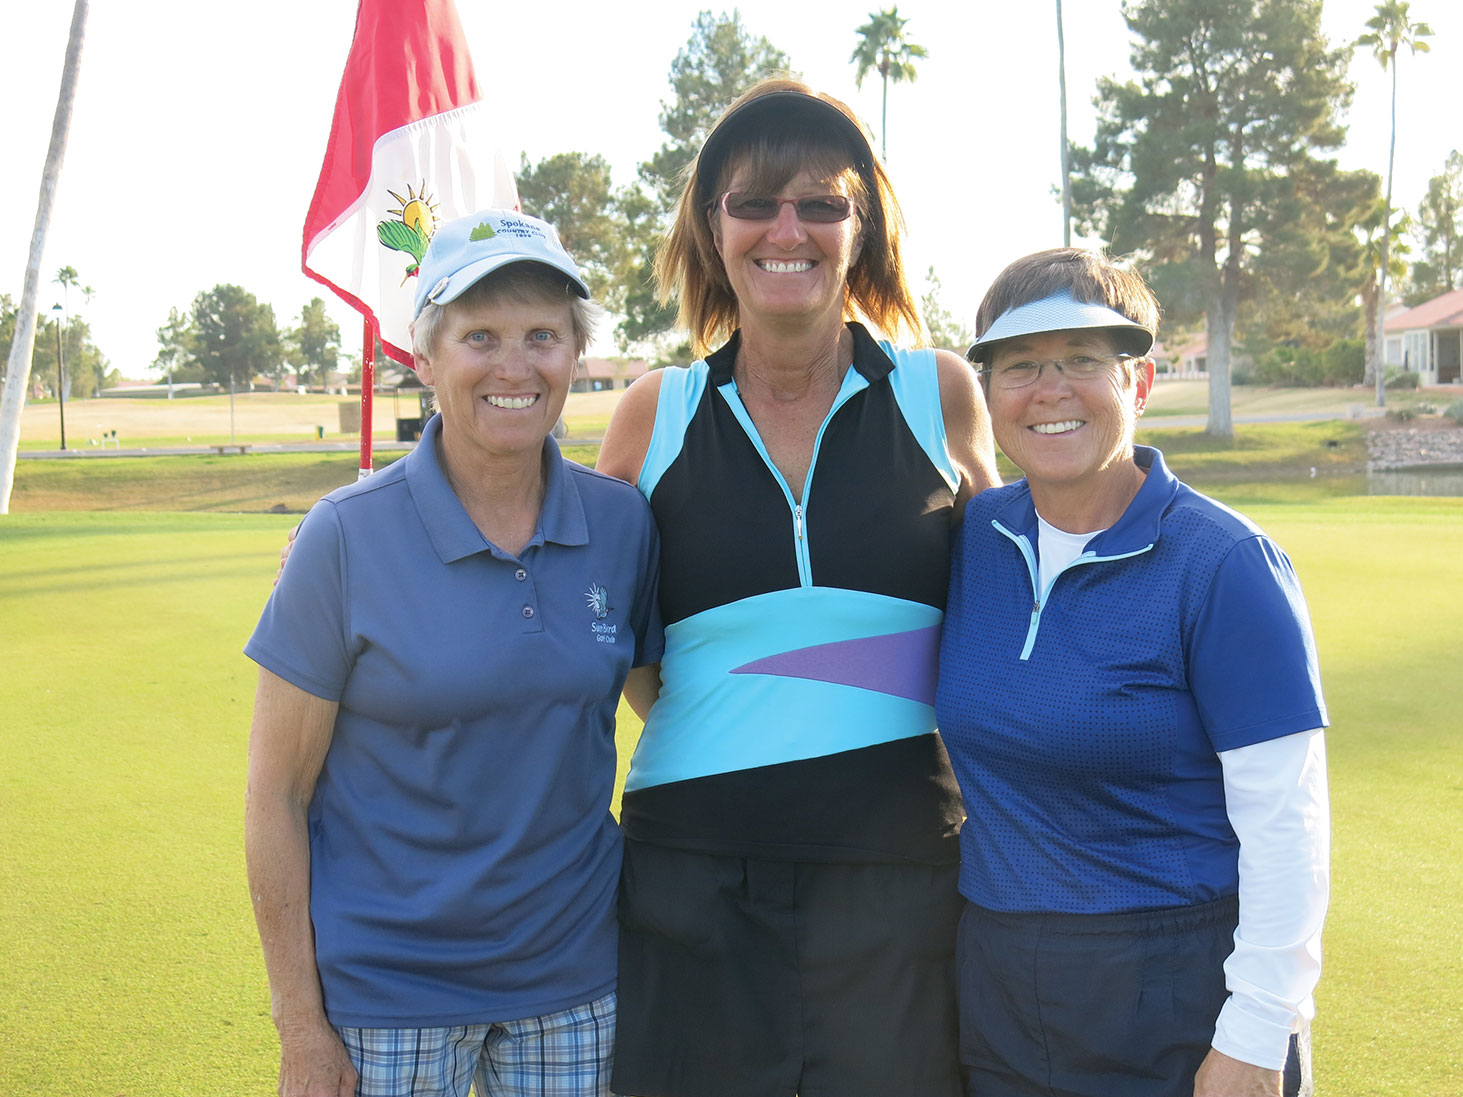 Karen Gilmore, 1st place winner; Melissa Craig, 2nd place; and Cindy Vig, 3rd place.